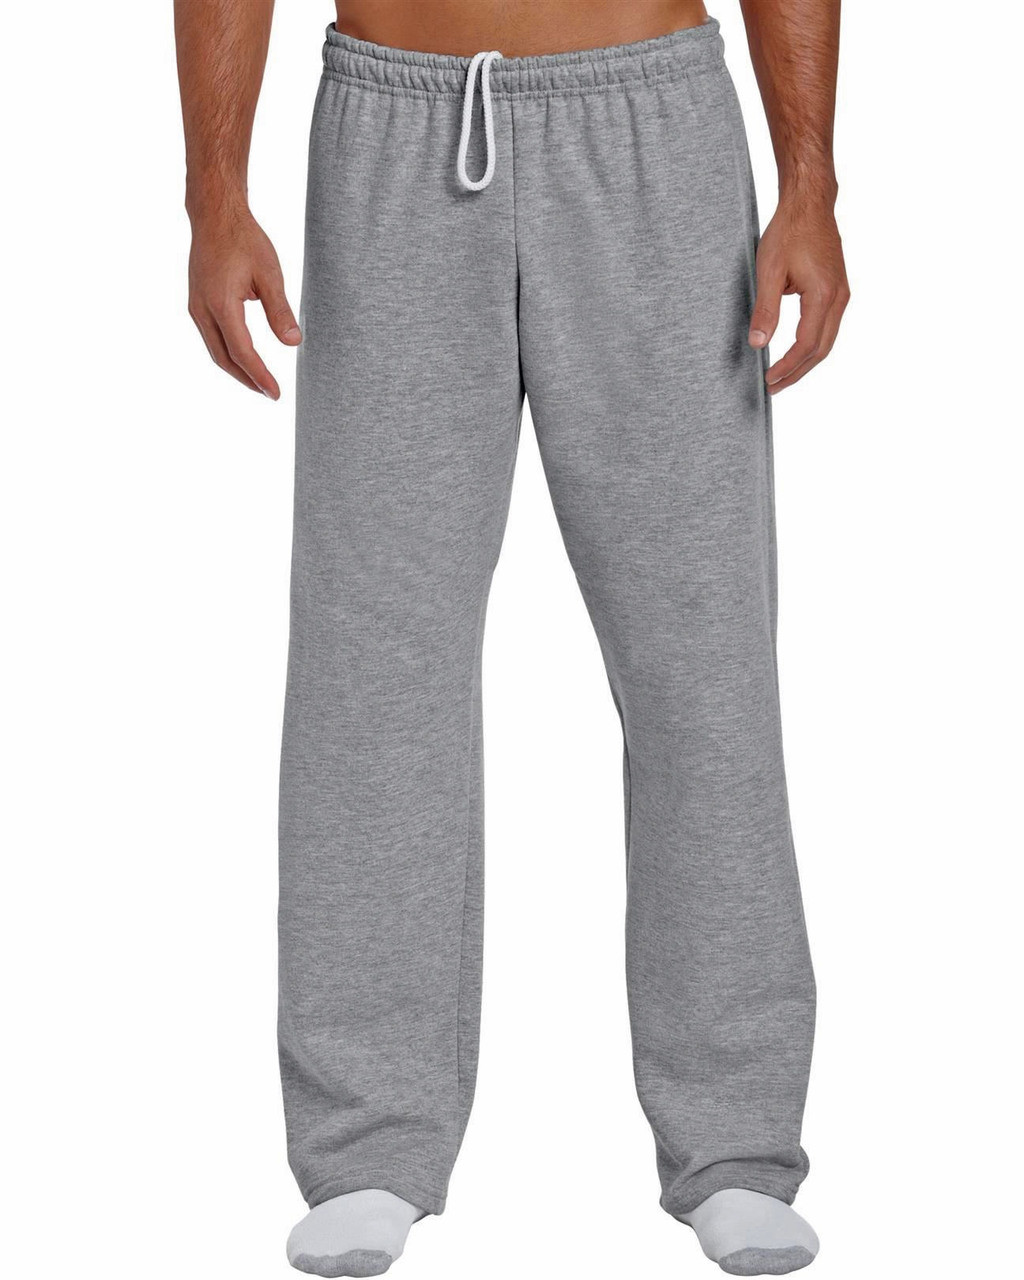 644e167602bc Sweatpants with non-elastic ankles